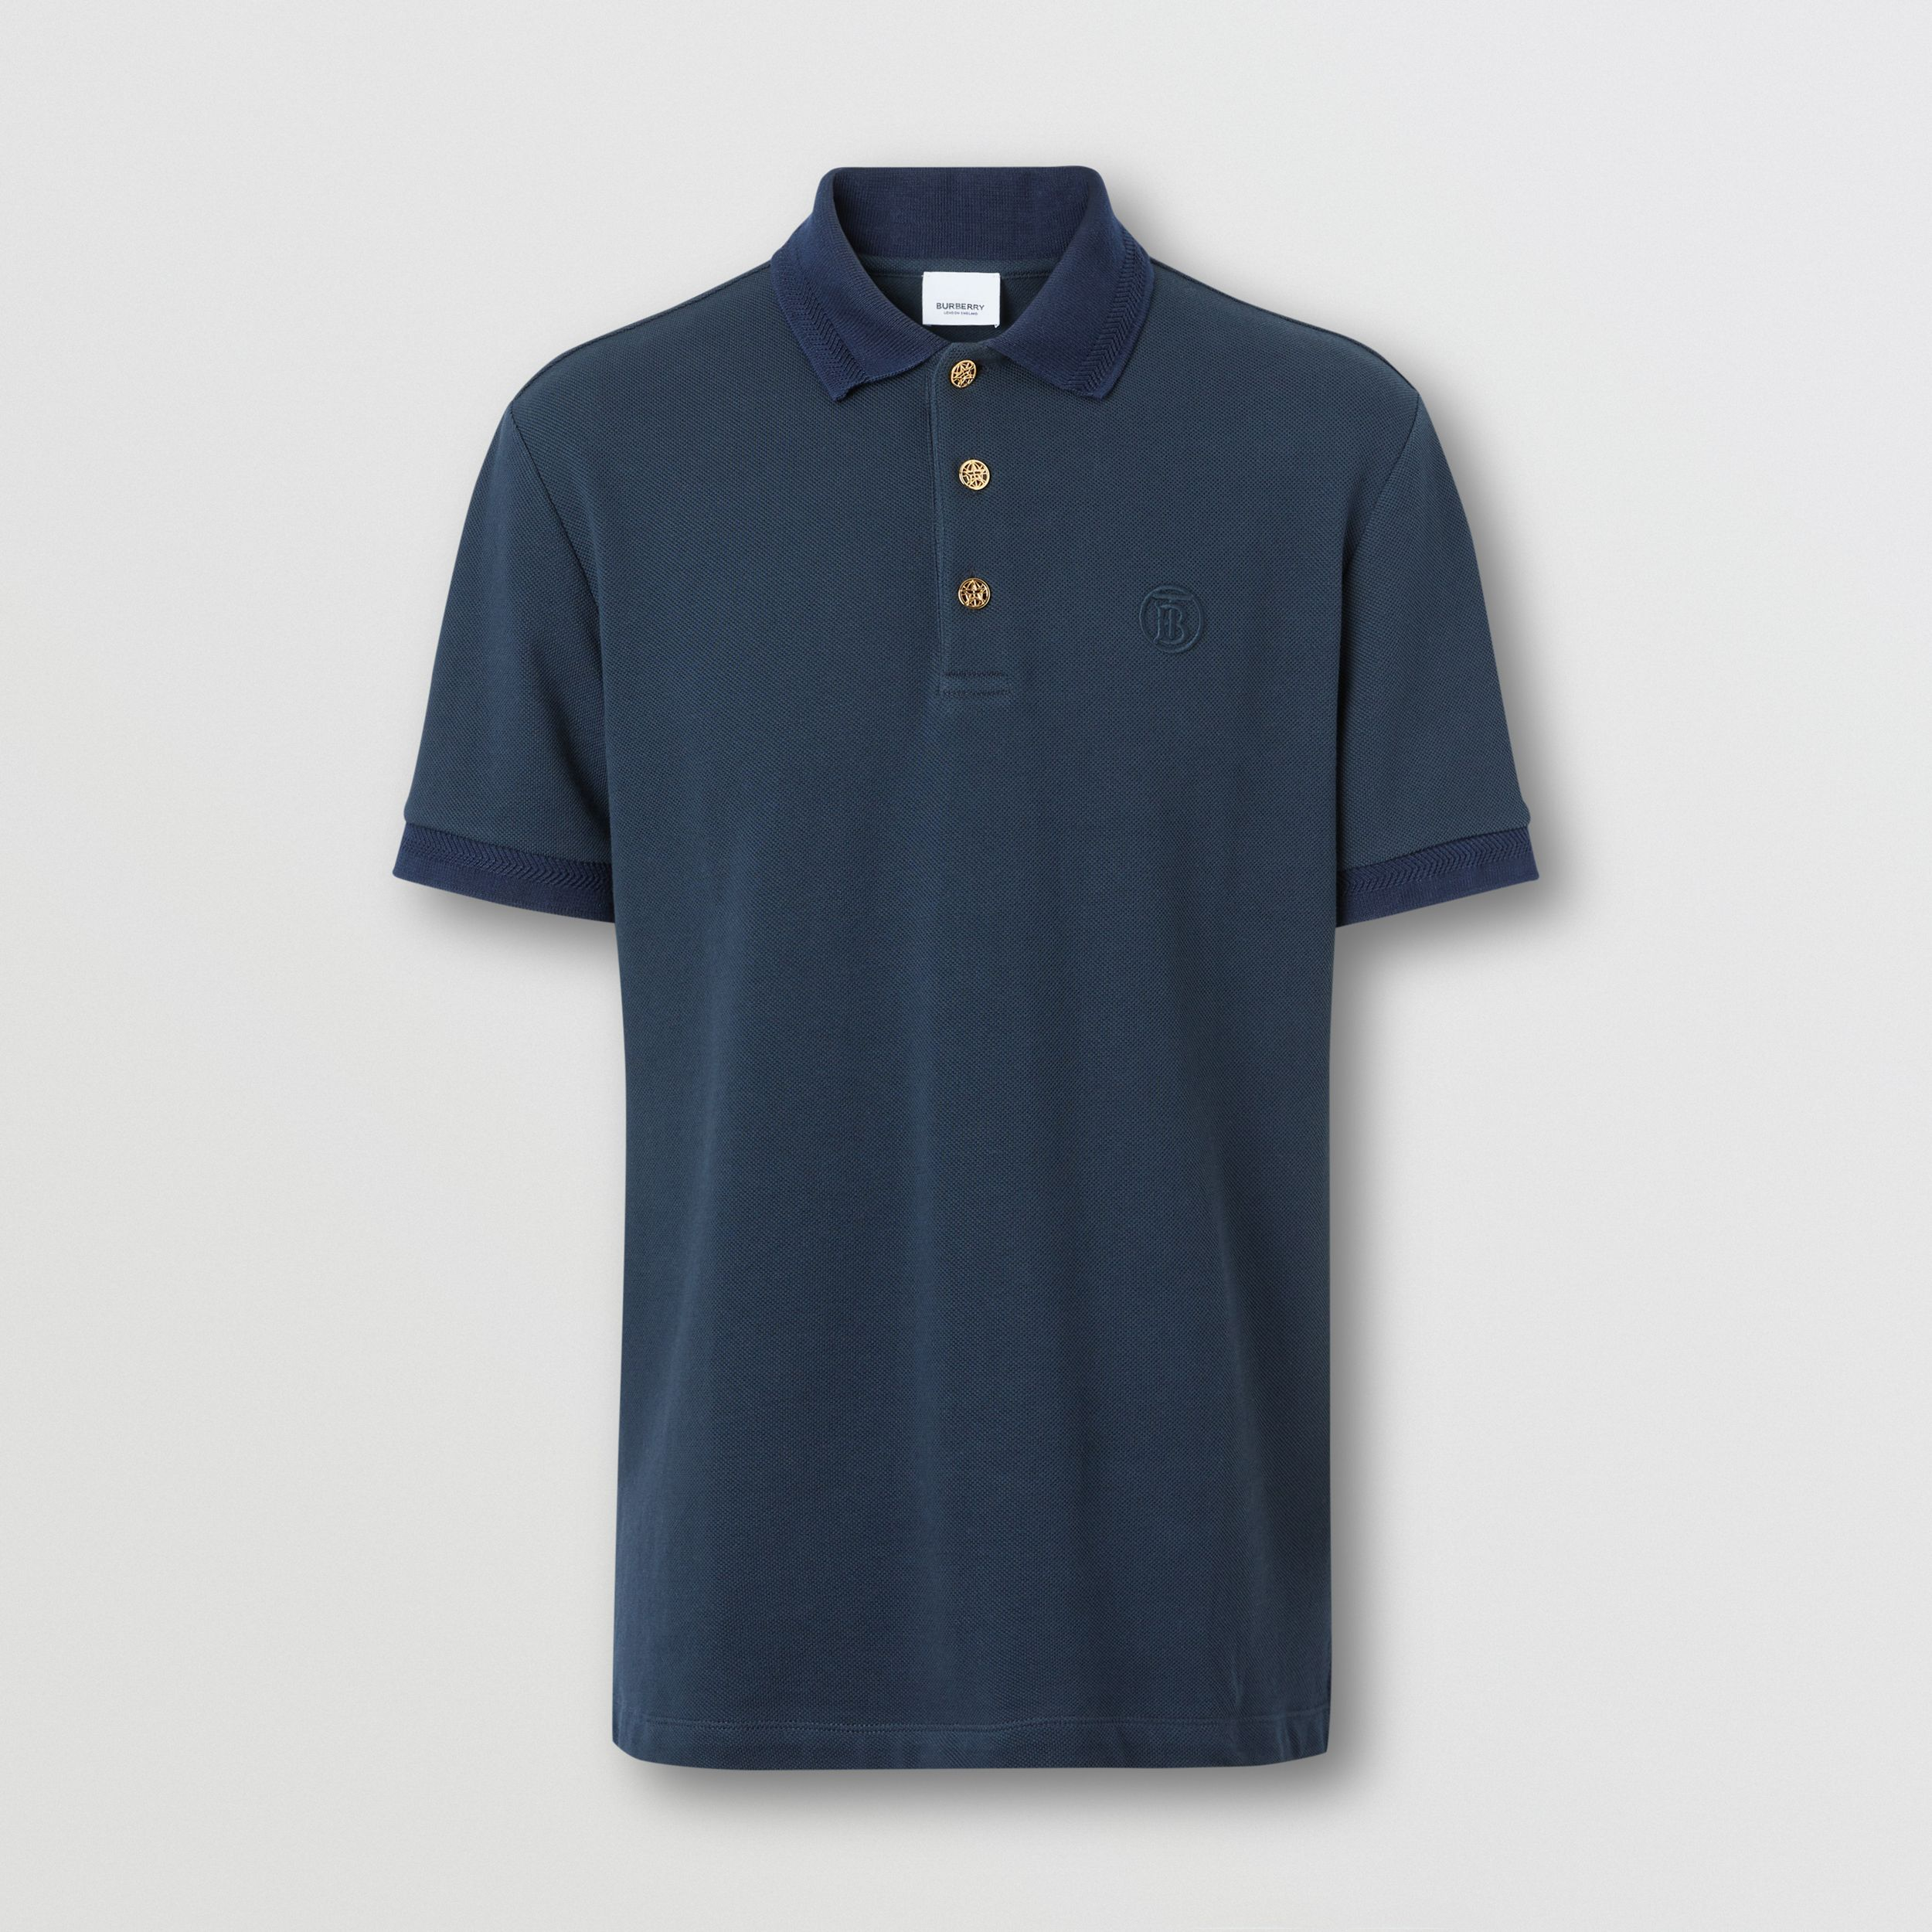 Button Detail Cotton Piqué Polo Shirt in Navy - Men | Burberry - 4